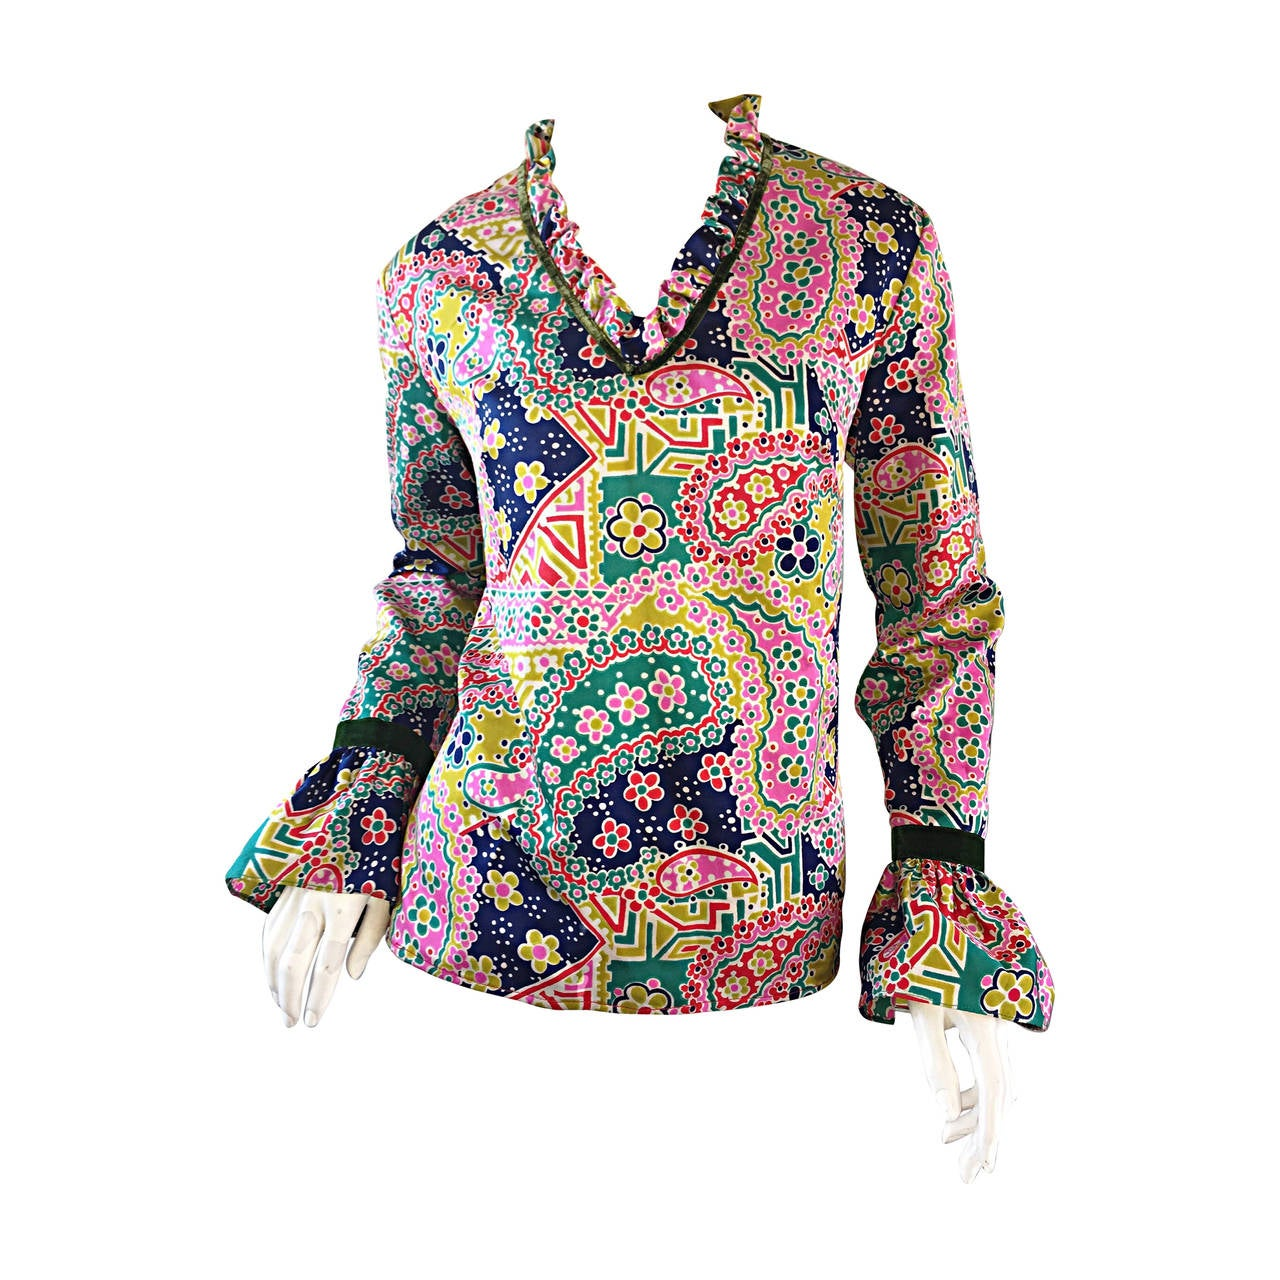 Psychedelic 1970s 70s Paisley + Floral Multi - Color Boho Top / Blouse / Tunic